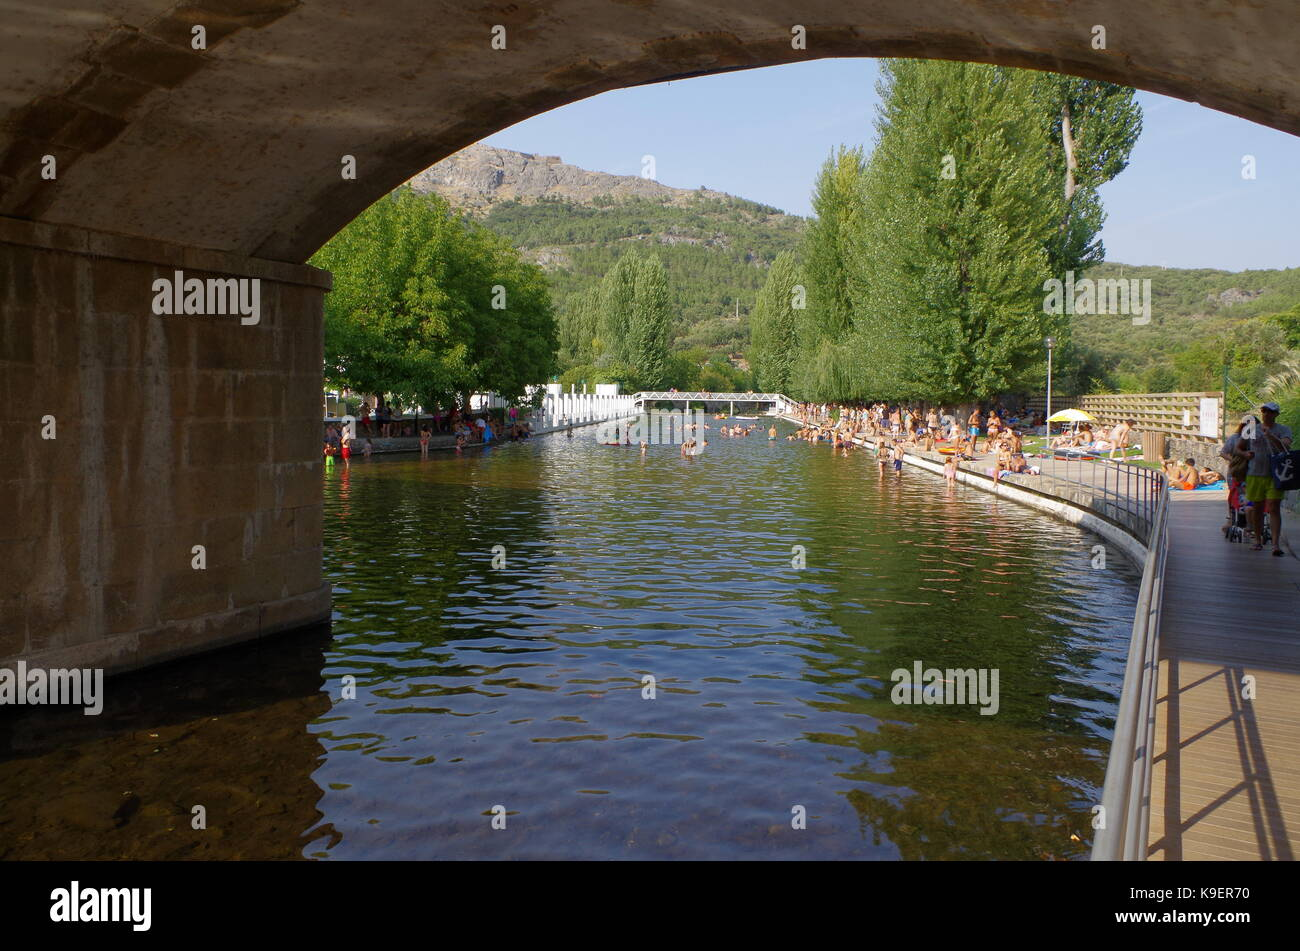 Sever river fluvial beach in Marvao. Portugal - Stock Image